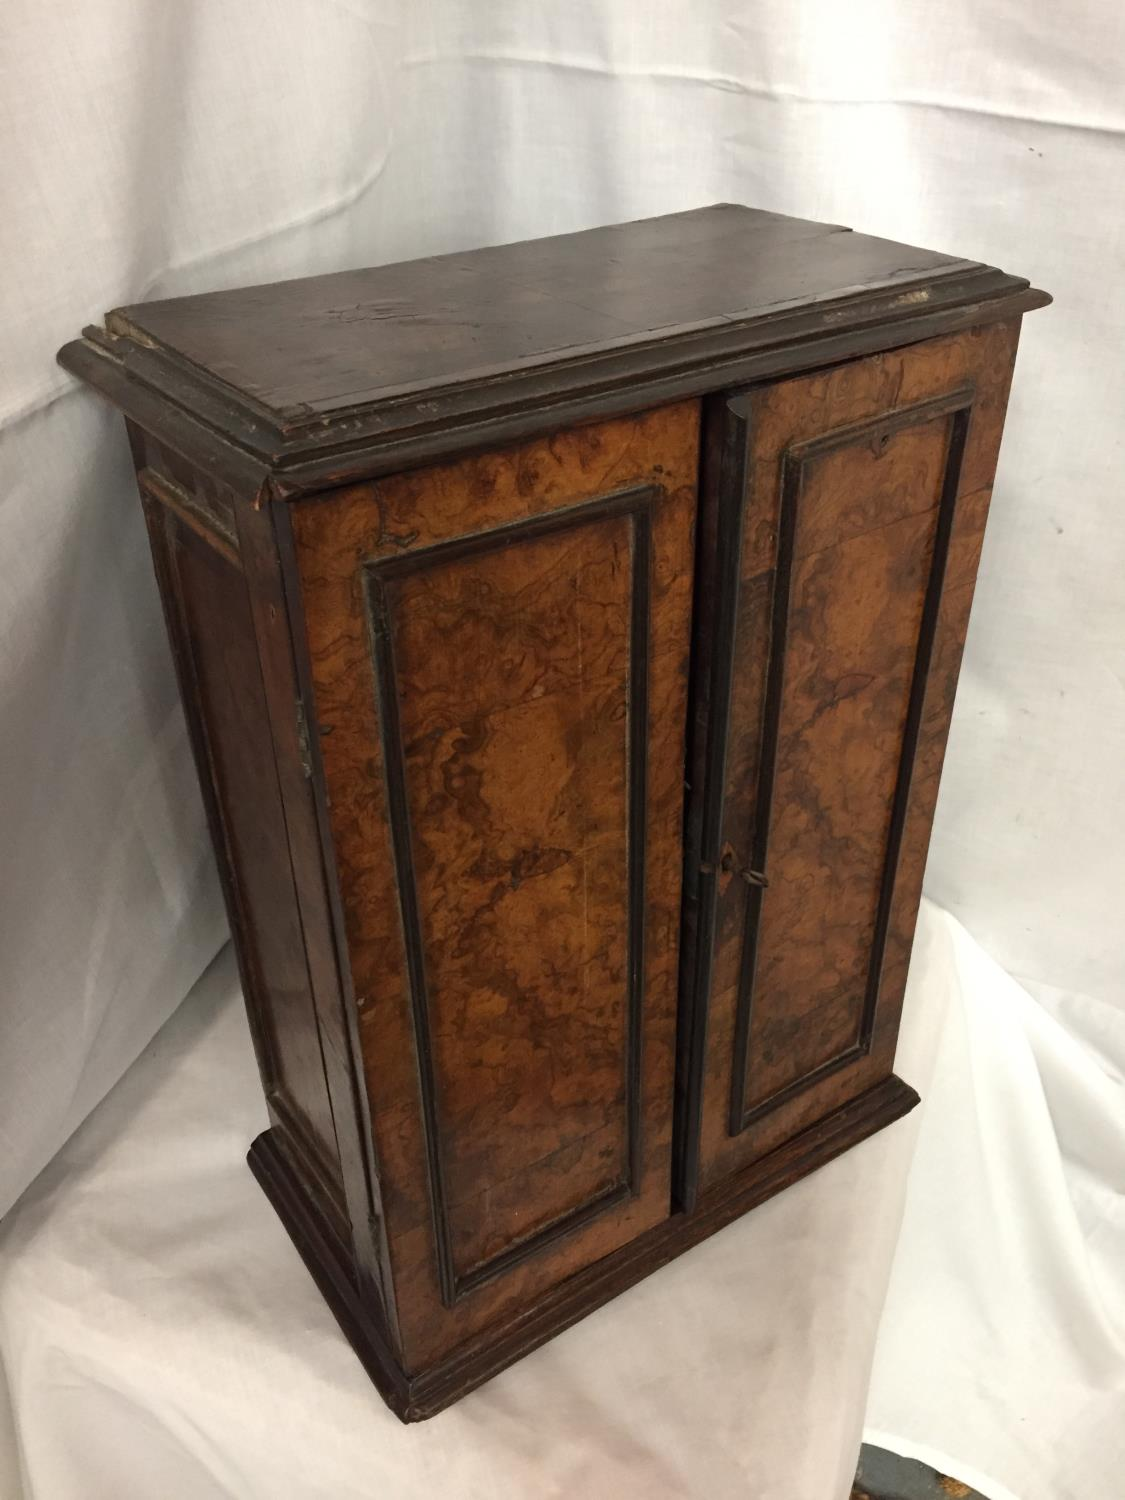 A WALNUT MINATURE CABINET TO INCORPORATE SEVEN DRAWERS 44CM HIGH POSSIBLY A WATCH MAKERS CABINET - Image 2 of 5